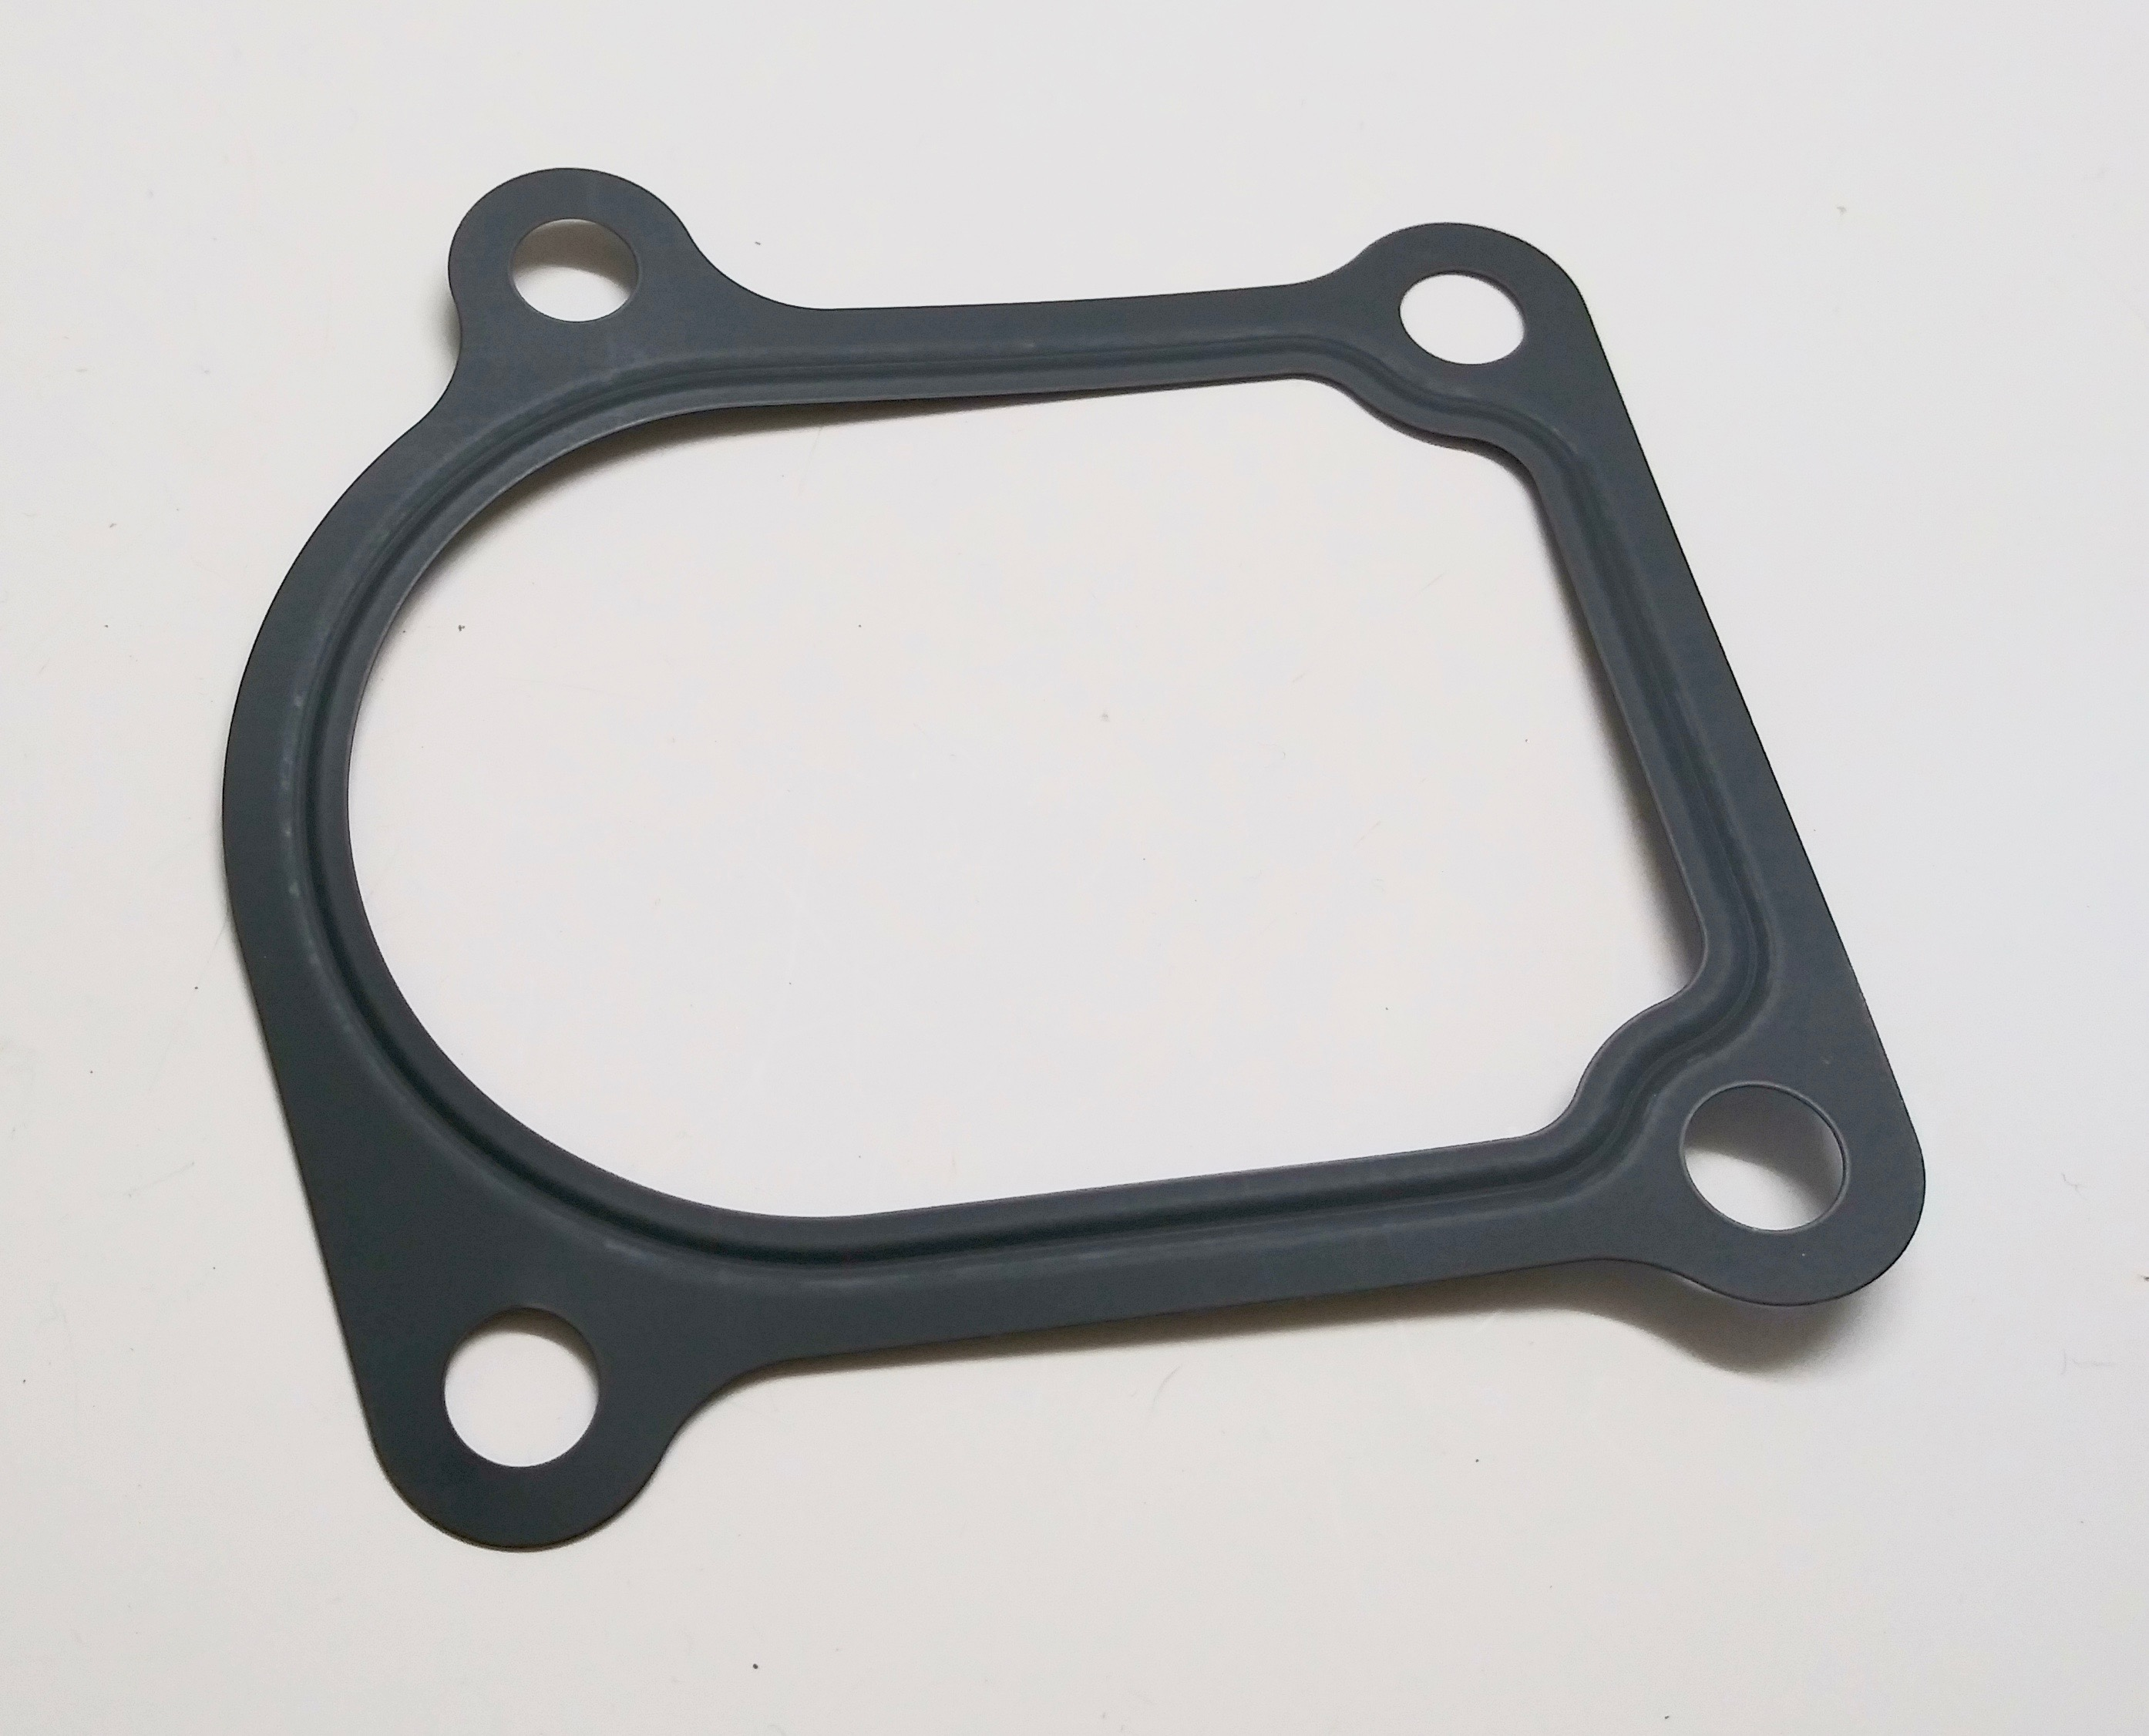 Thermostat Guide Gasket for 93-97 80's and LX450's